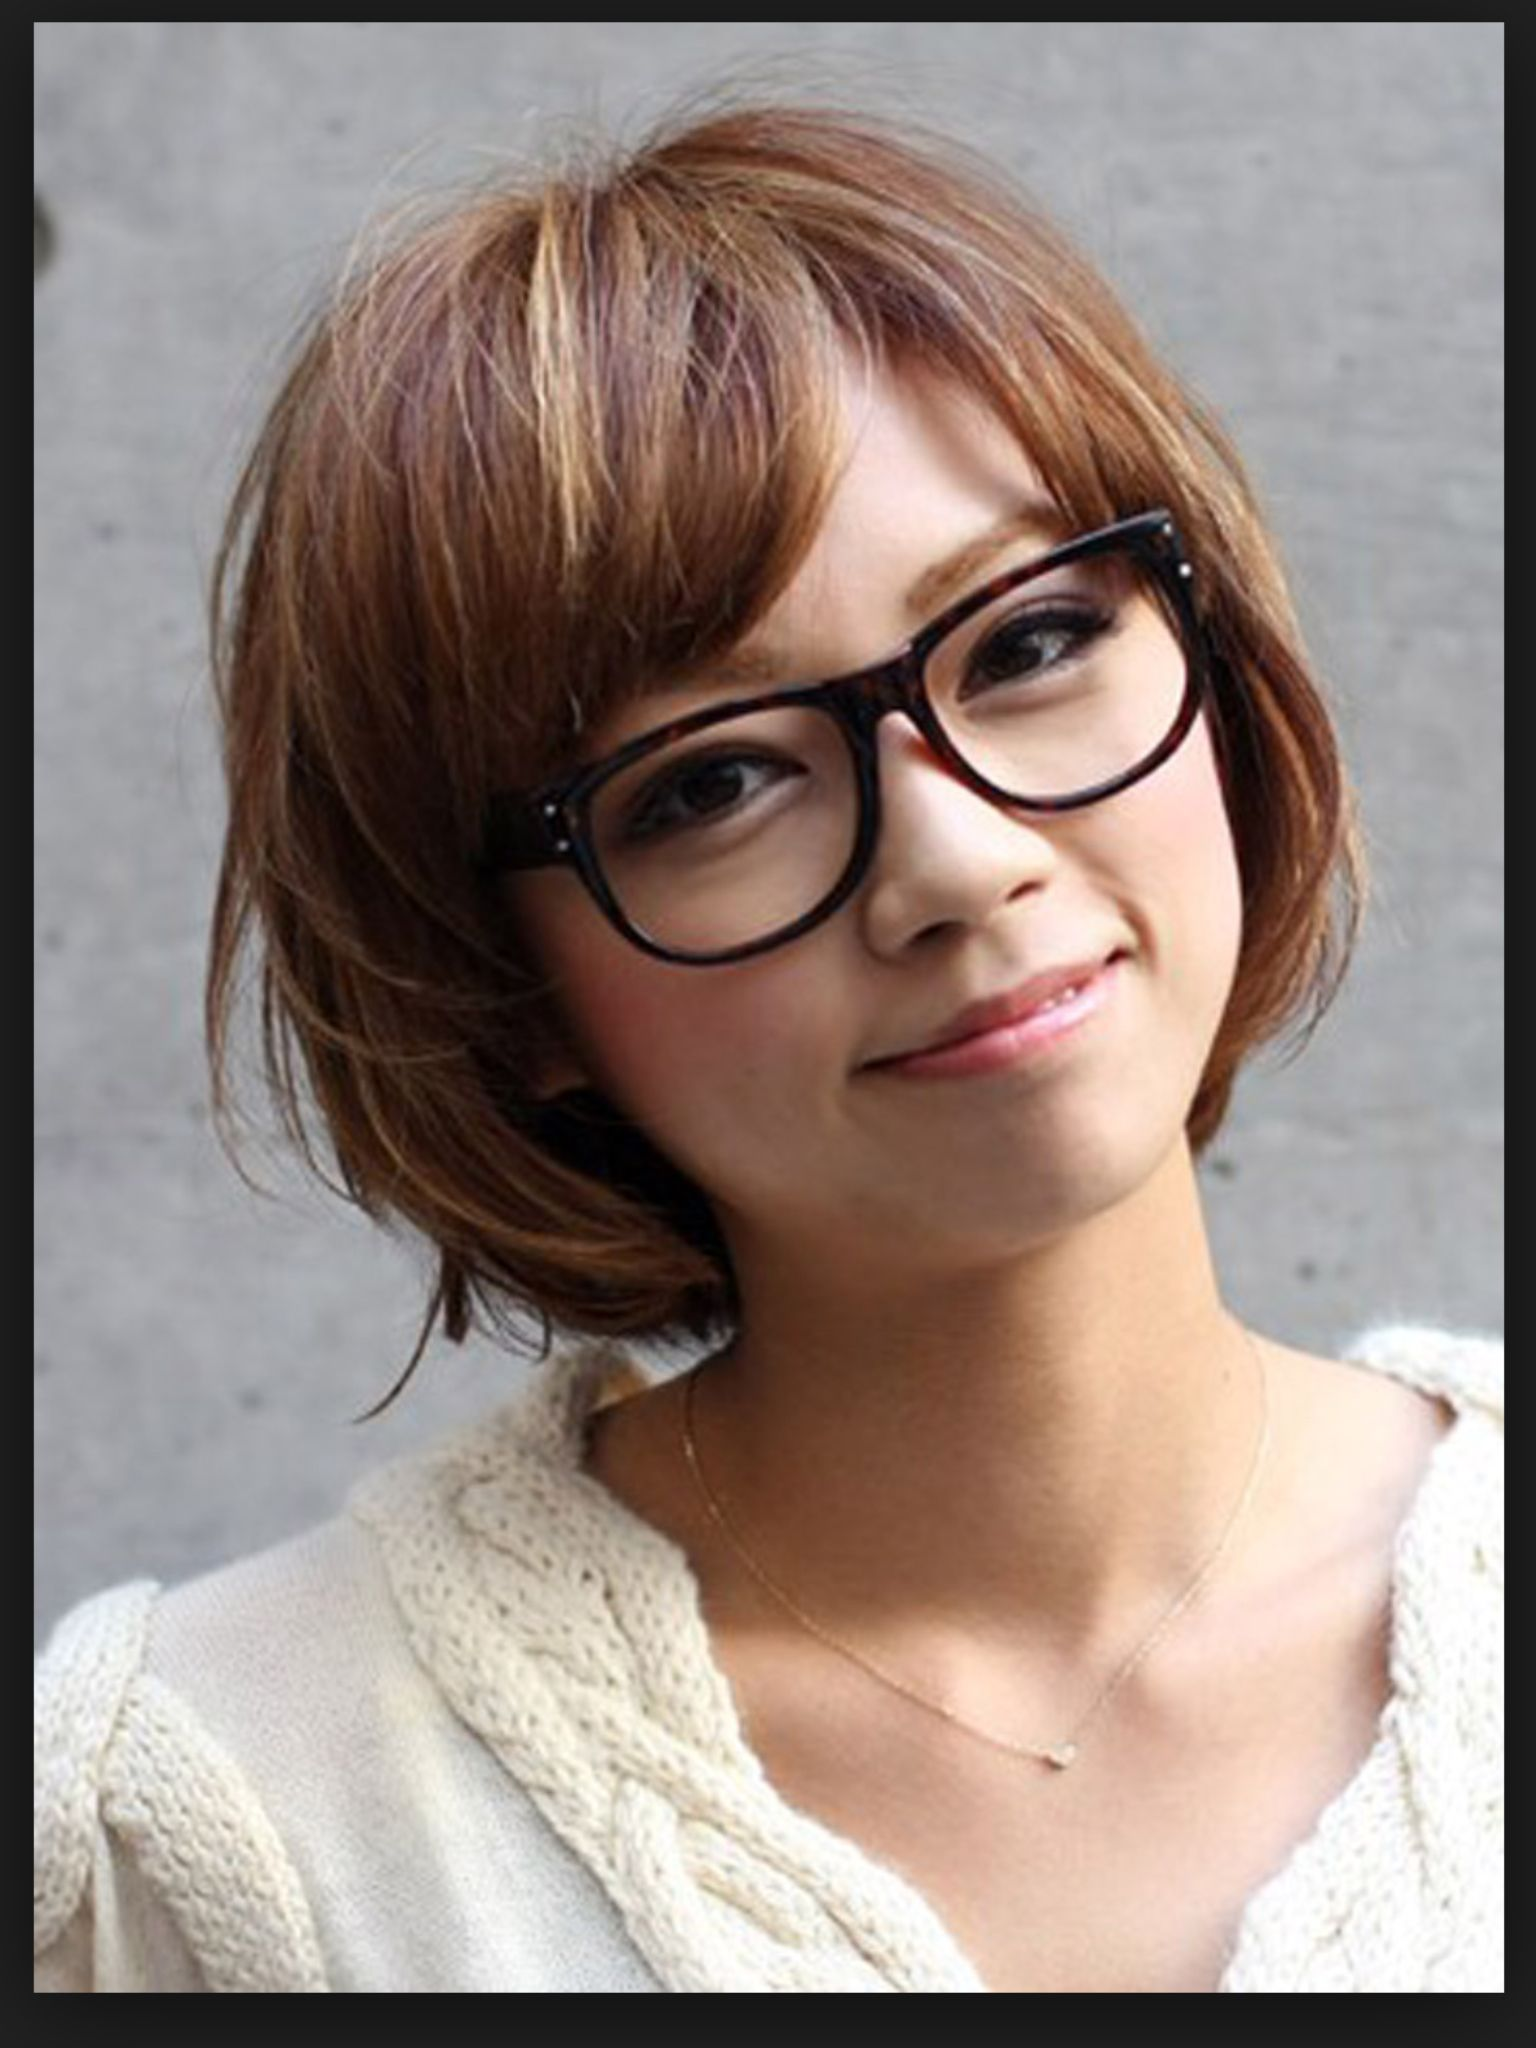 Glasses With A Trendy Bob Cute Hairstyles For Short Hair Oval Face Hairstyles Short Hair With Bangs